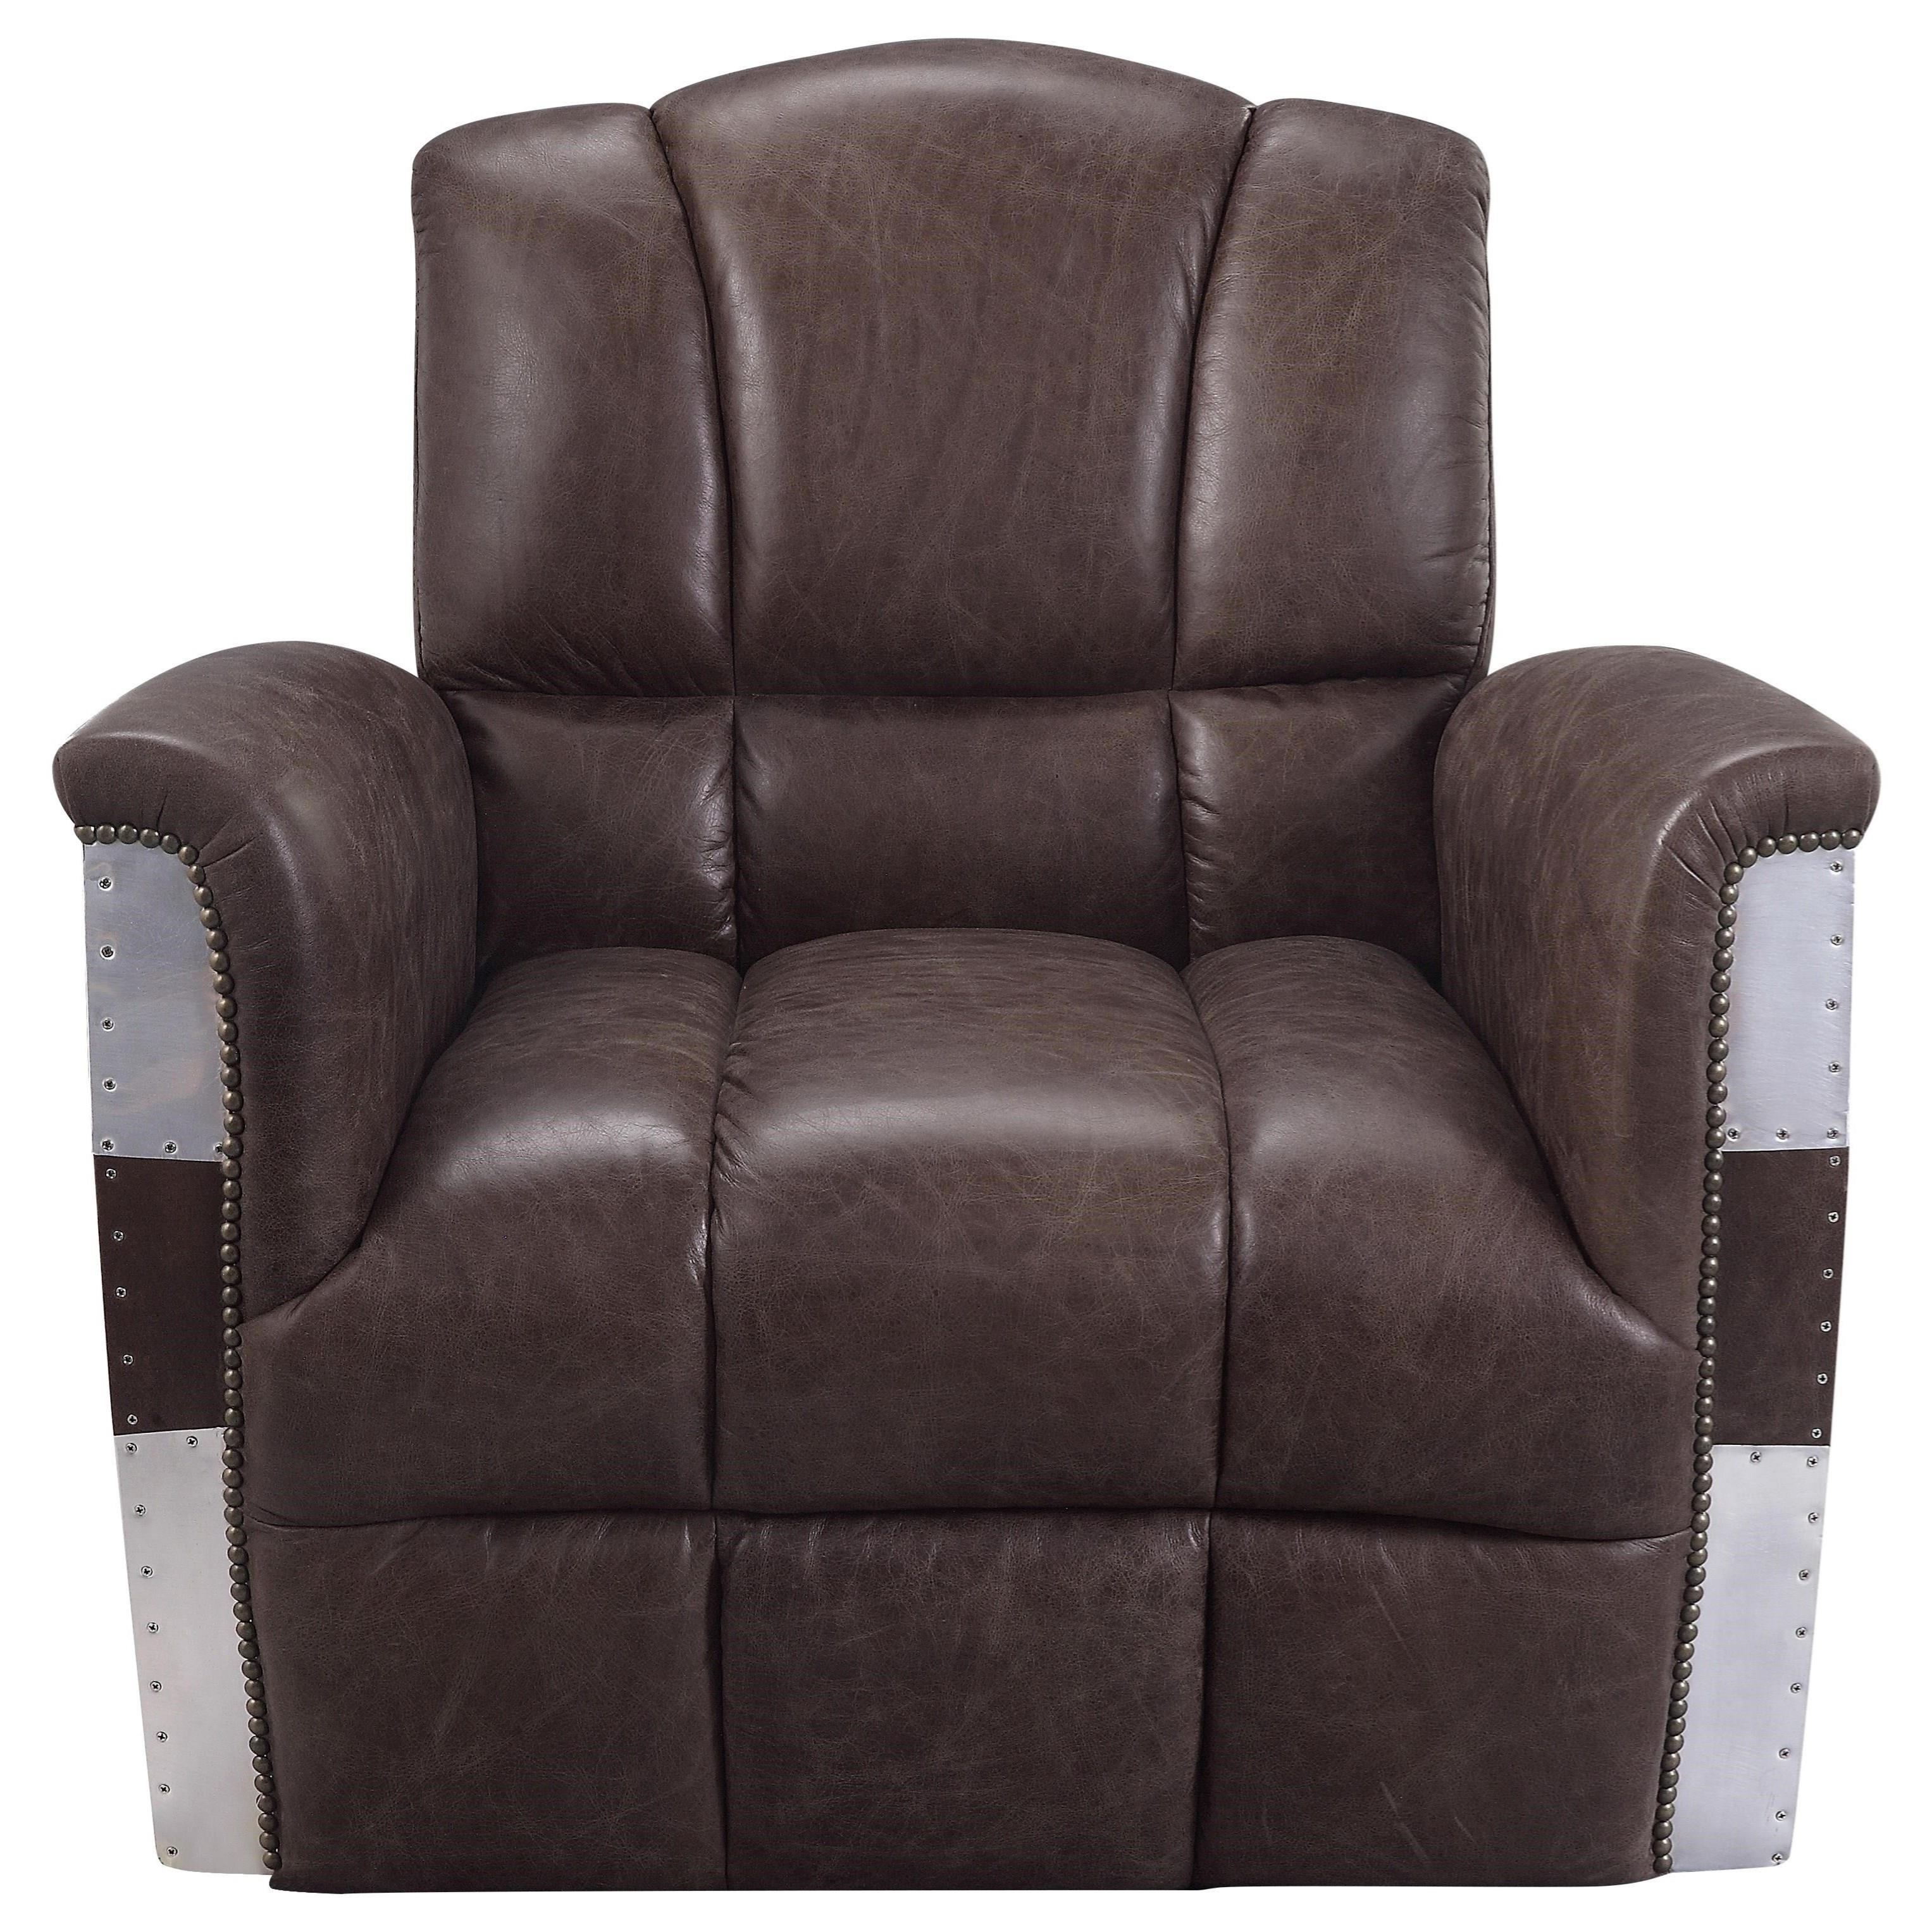 Brancaster Accent Chair by Acme Furniture at Corner Furniture